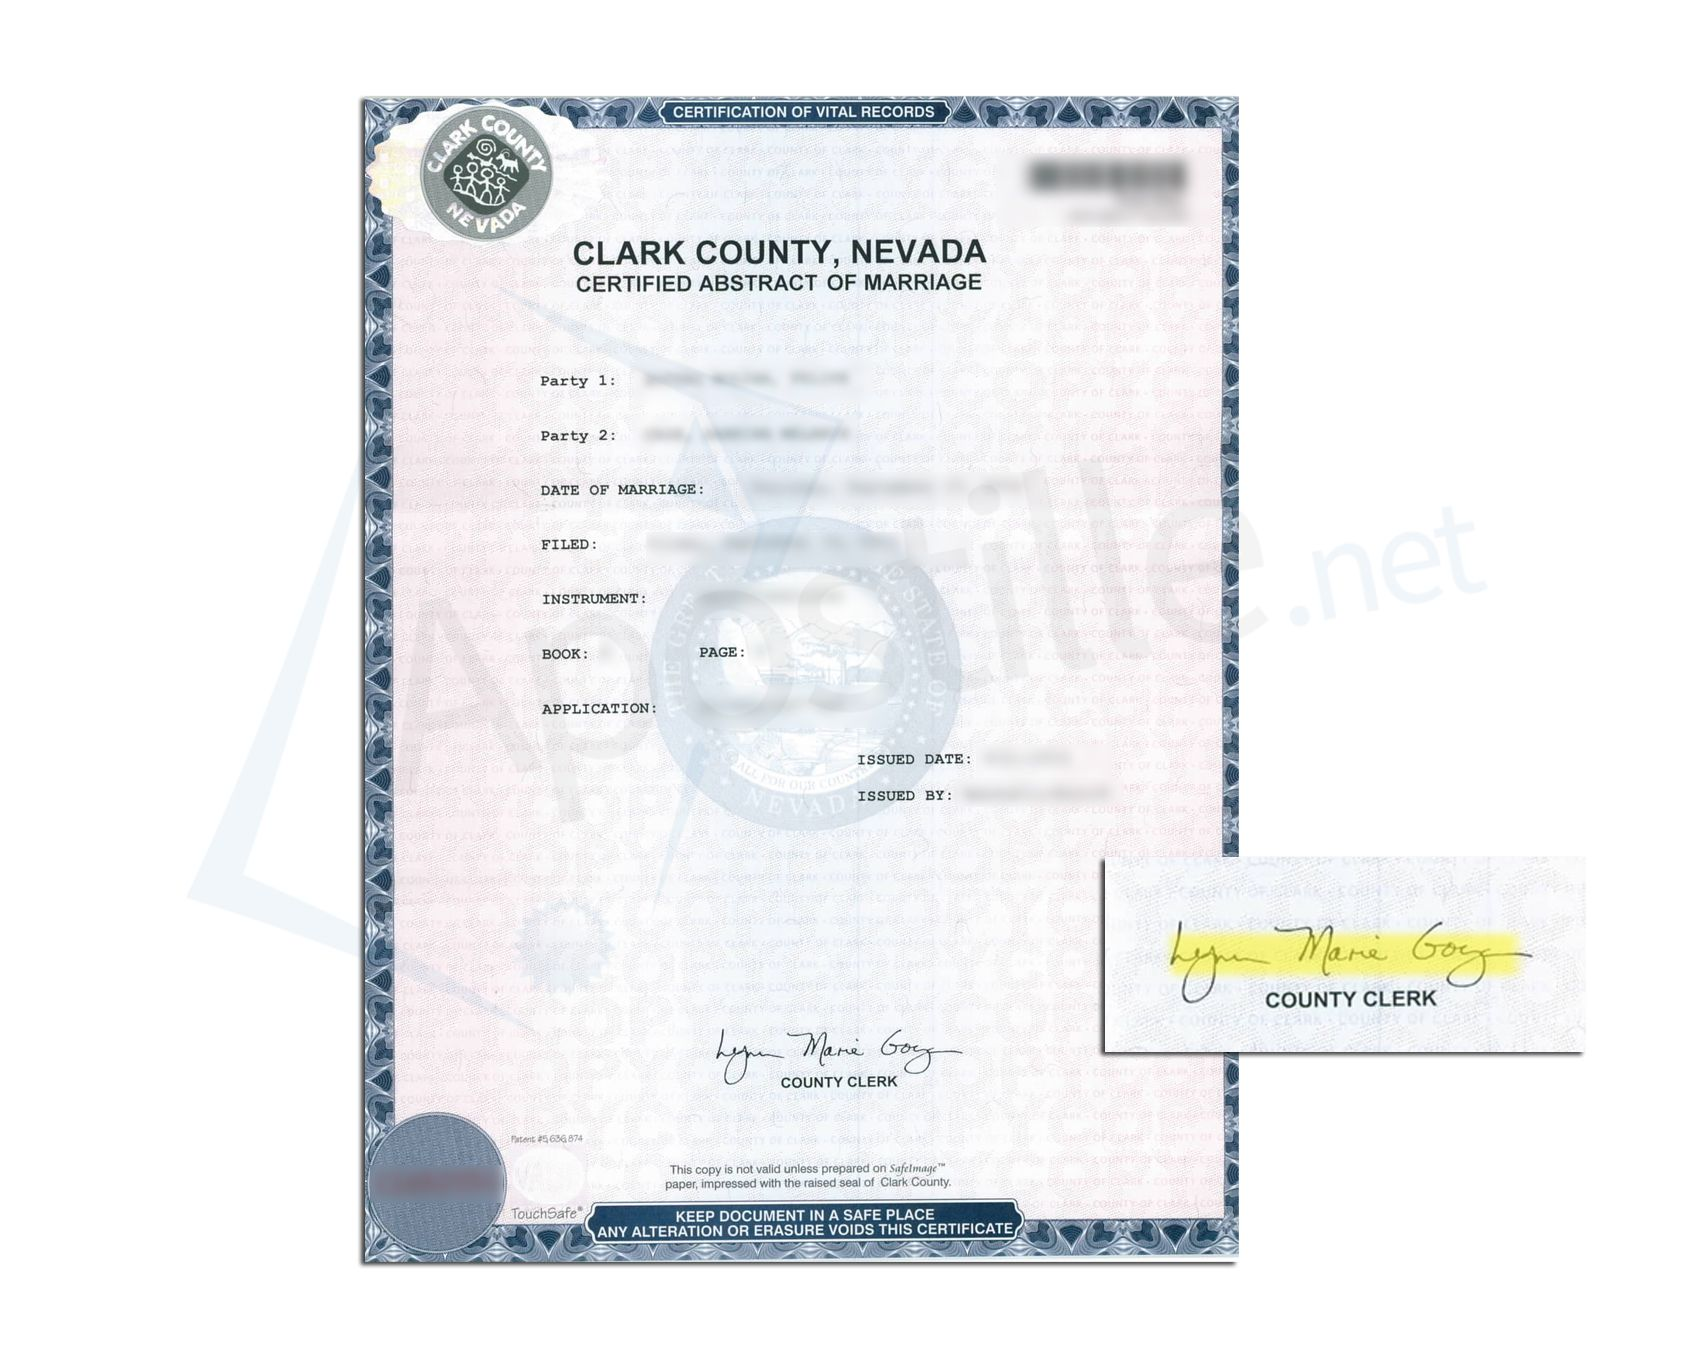 Clark county state of nevada certificate abstract of marriage clark county state of nevada certificate abstract of marriage issued by lynn marie goya county clerk aiddatafo Gallery